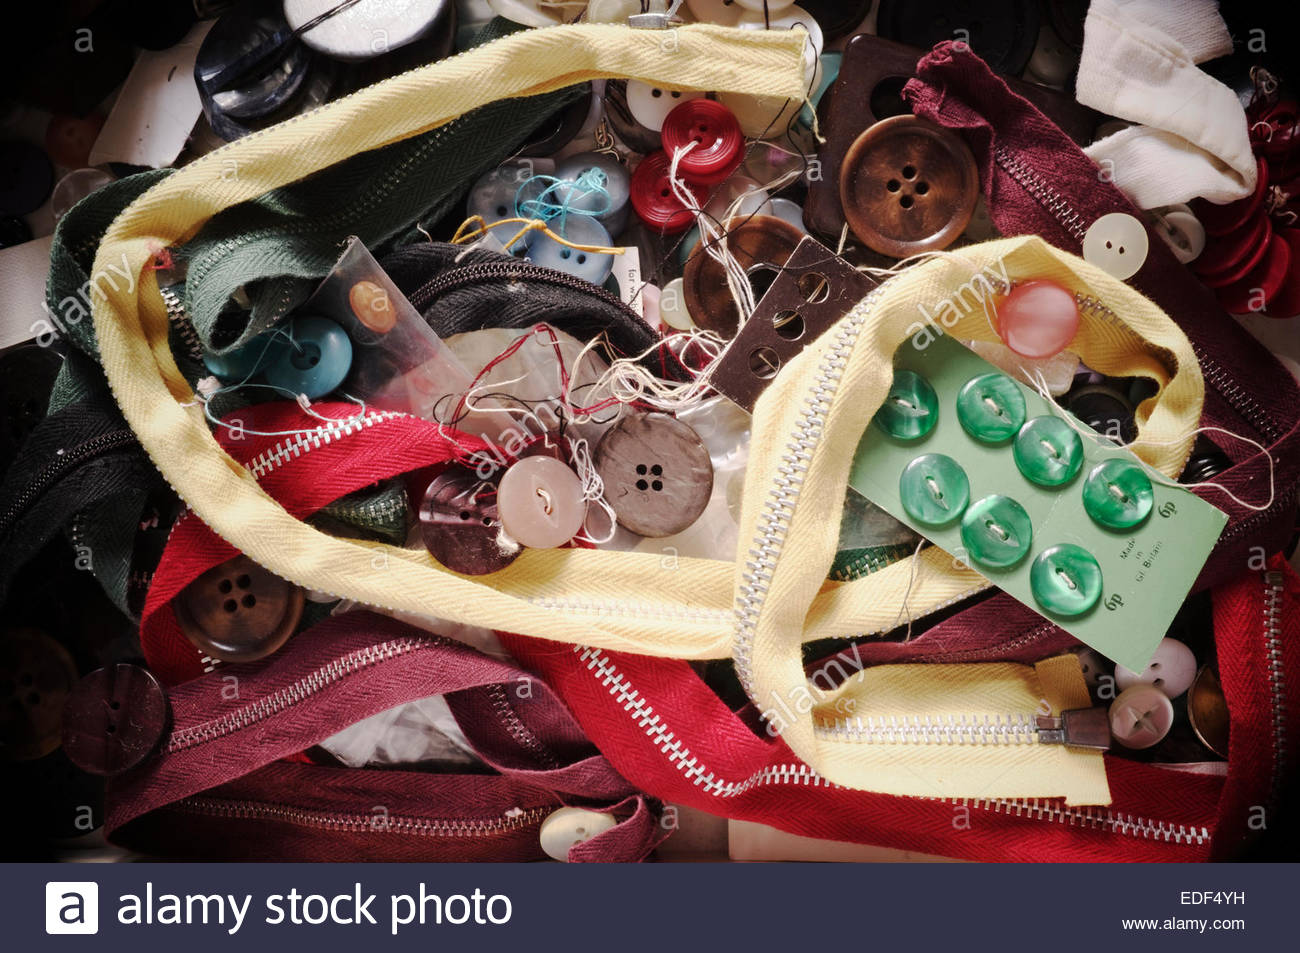 An assortment of mixed zips and buttons for clothing garments. - Stock Image